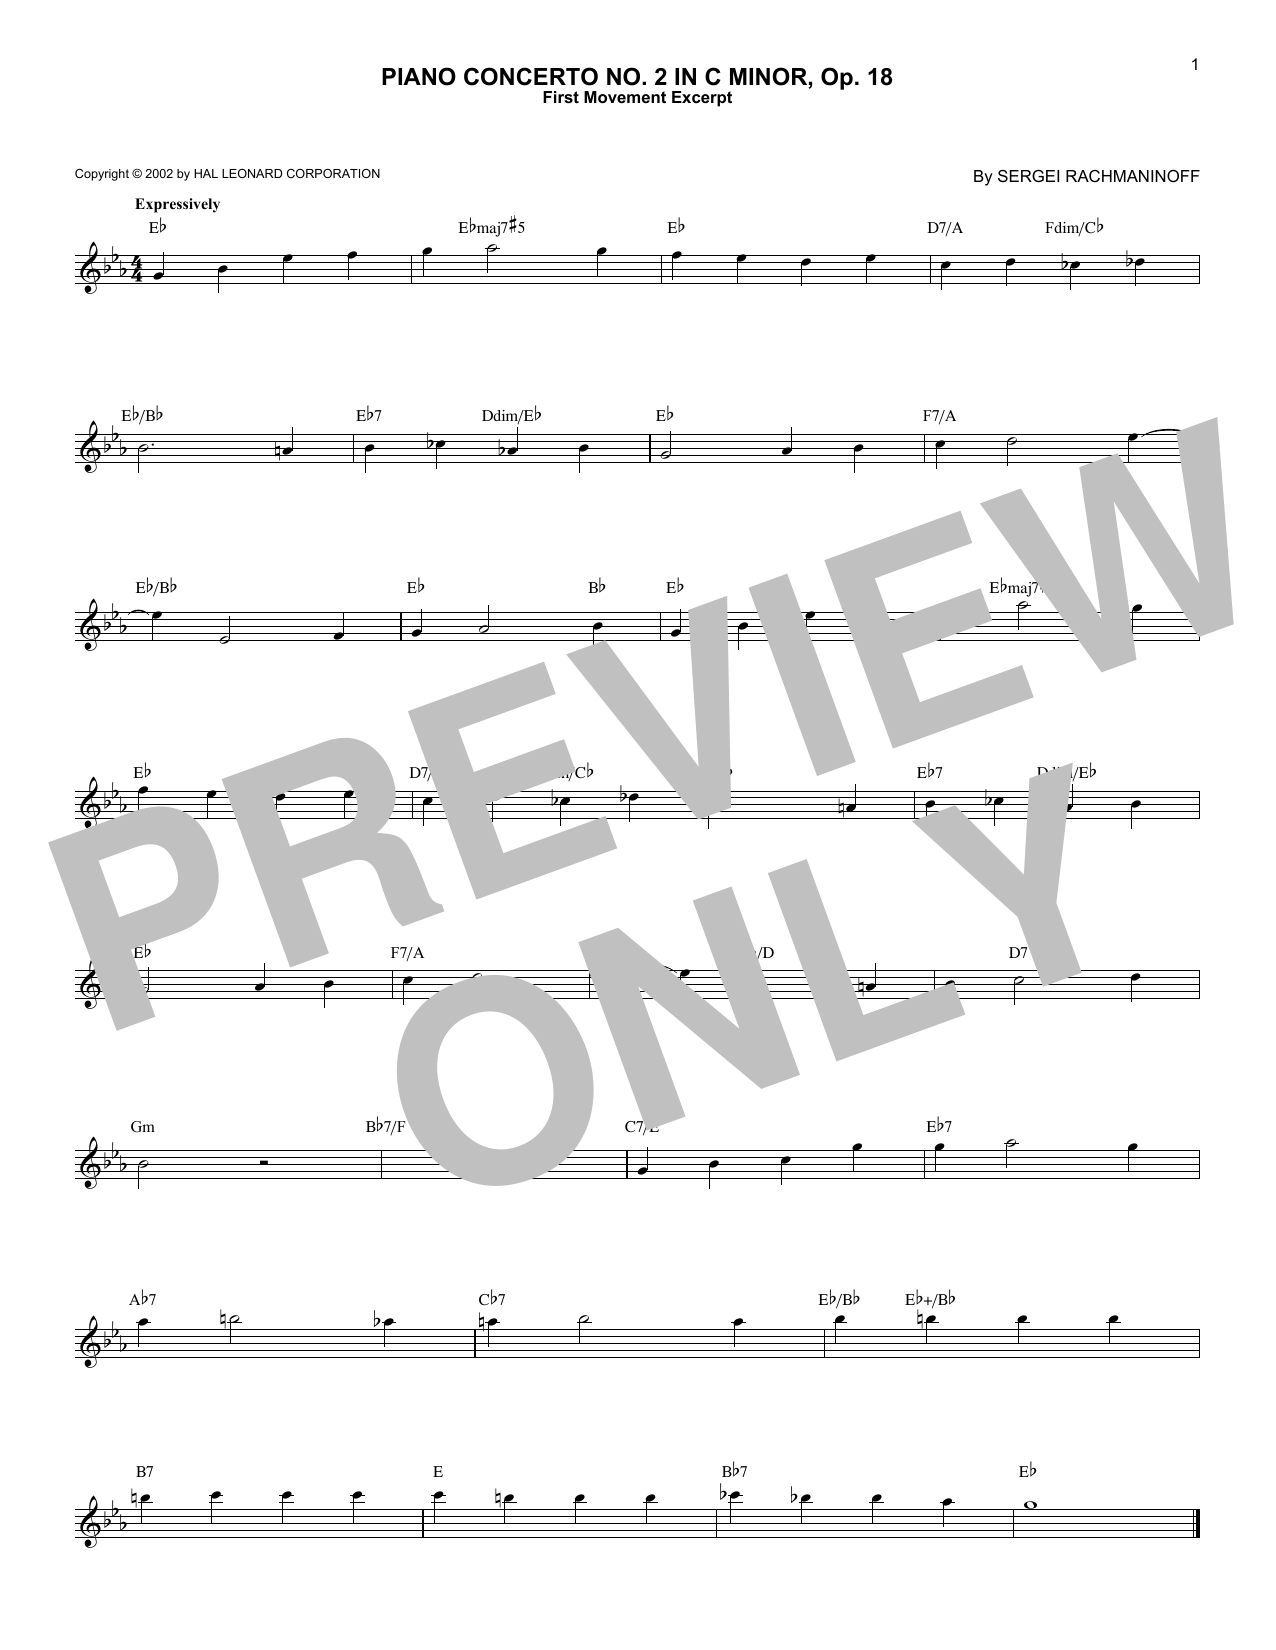 Sergei Rachmaninoff Piano Concerto No. 2 In C Minor, Op. 18 sheet music notes and chords